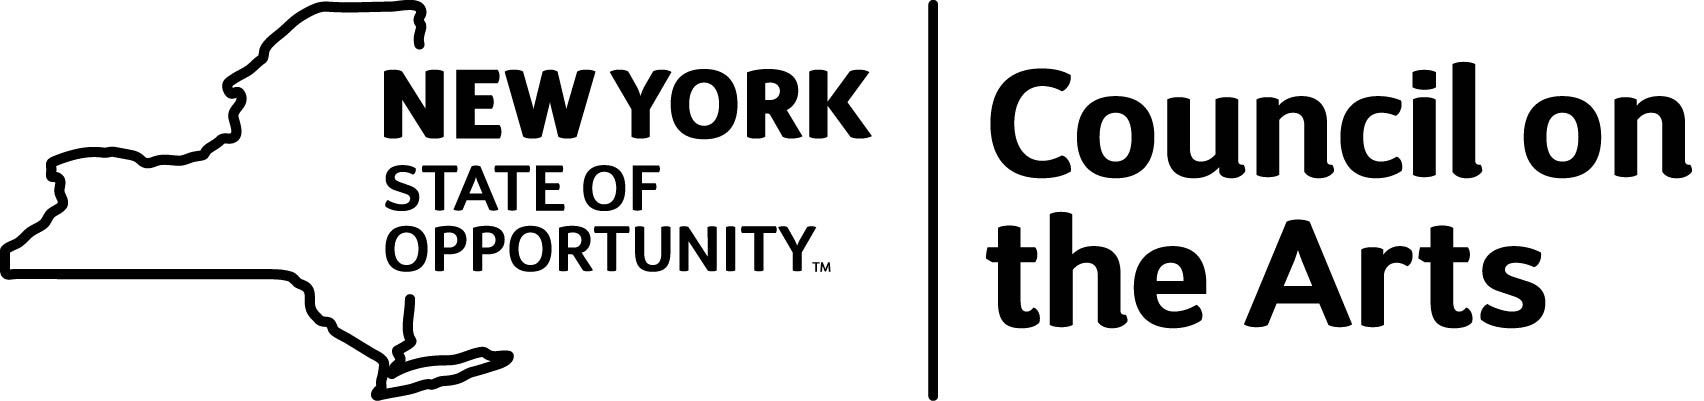 New York State Council on the Arts with the support of Governor Andrew M. Cuomo and the New York State Legislature.